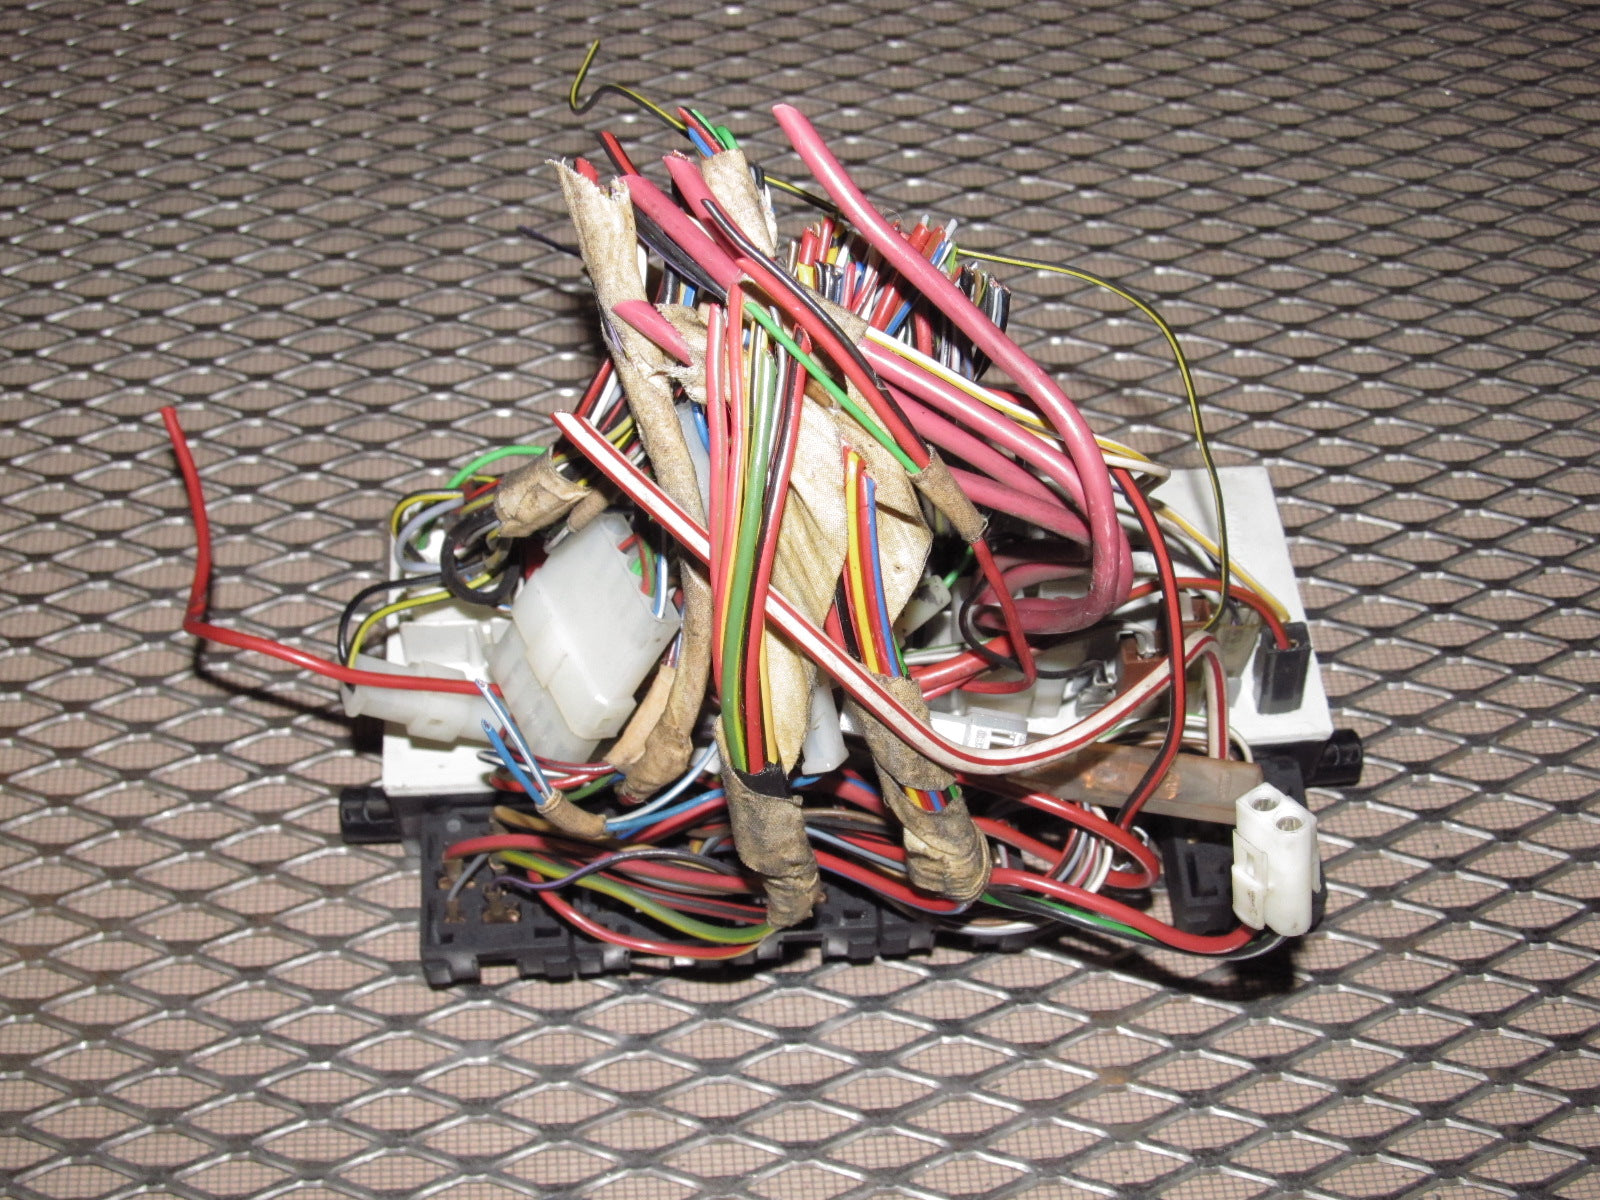 Porsche 944 Fuse Relay Diagram Real Wiring 1984 Pontiac Fiero Box 85 U2022 For Free 1985